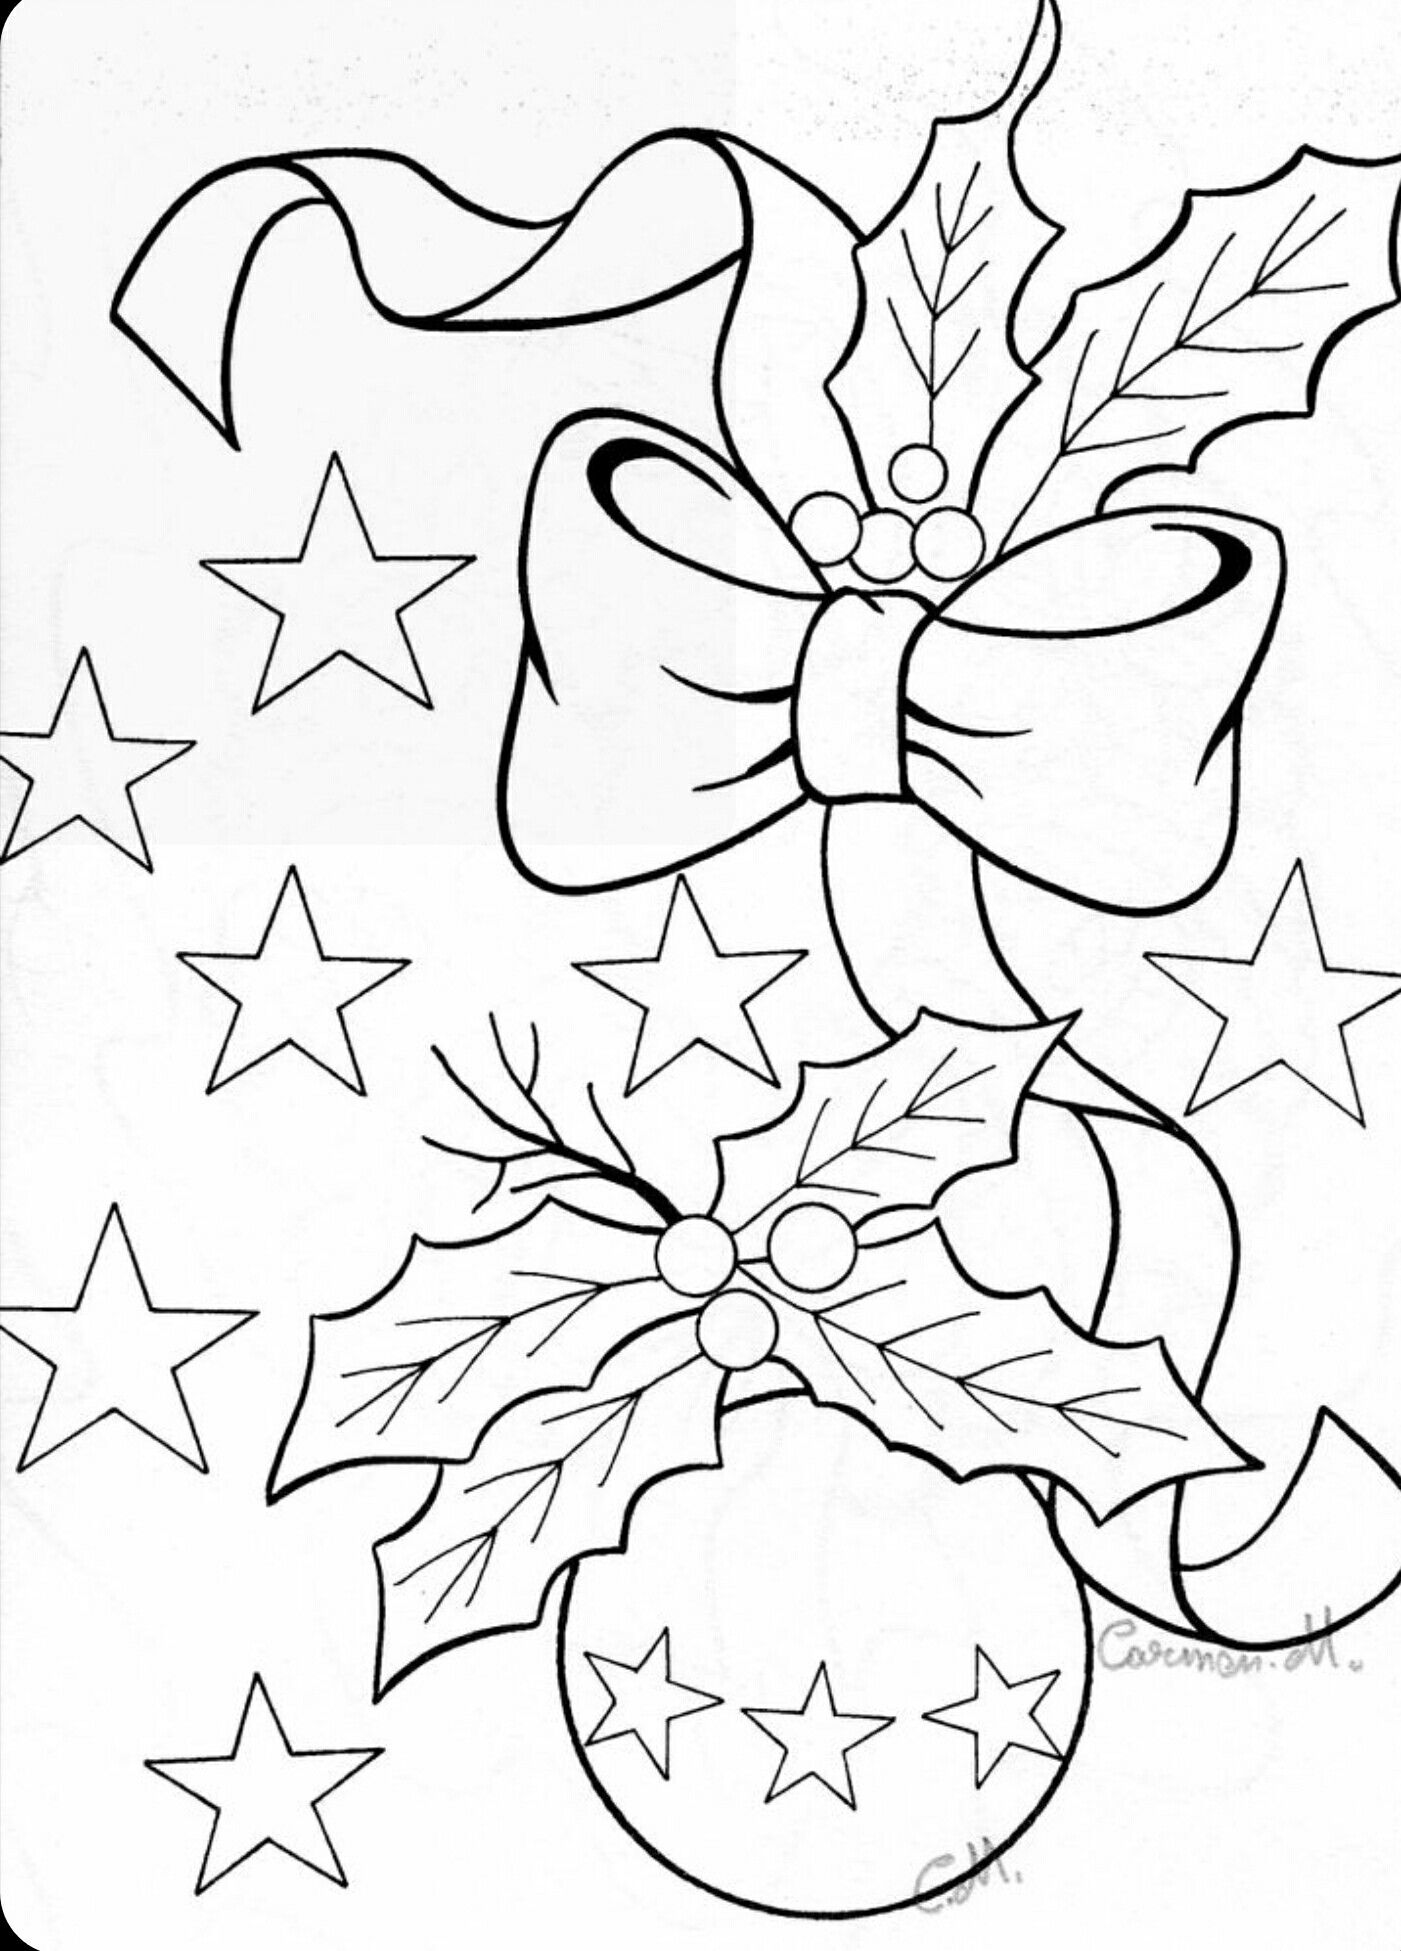 Follow My Pinterest vickileandro Coloring Pages